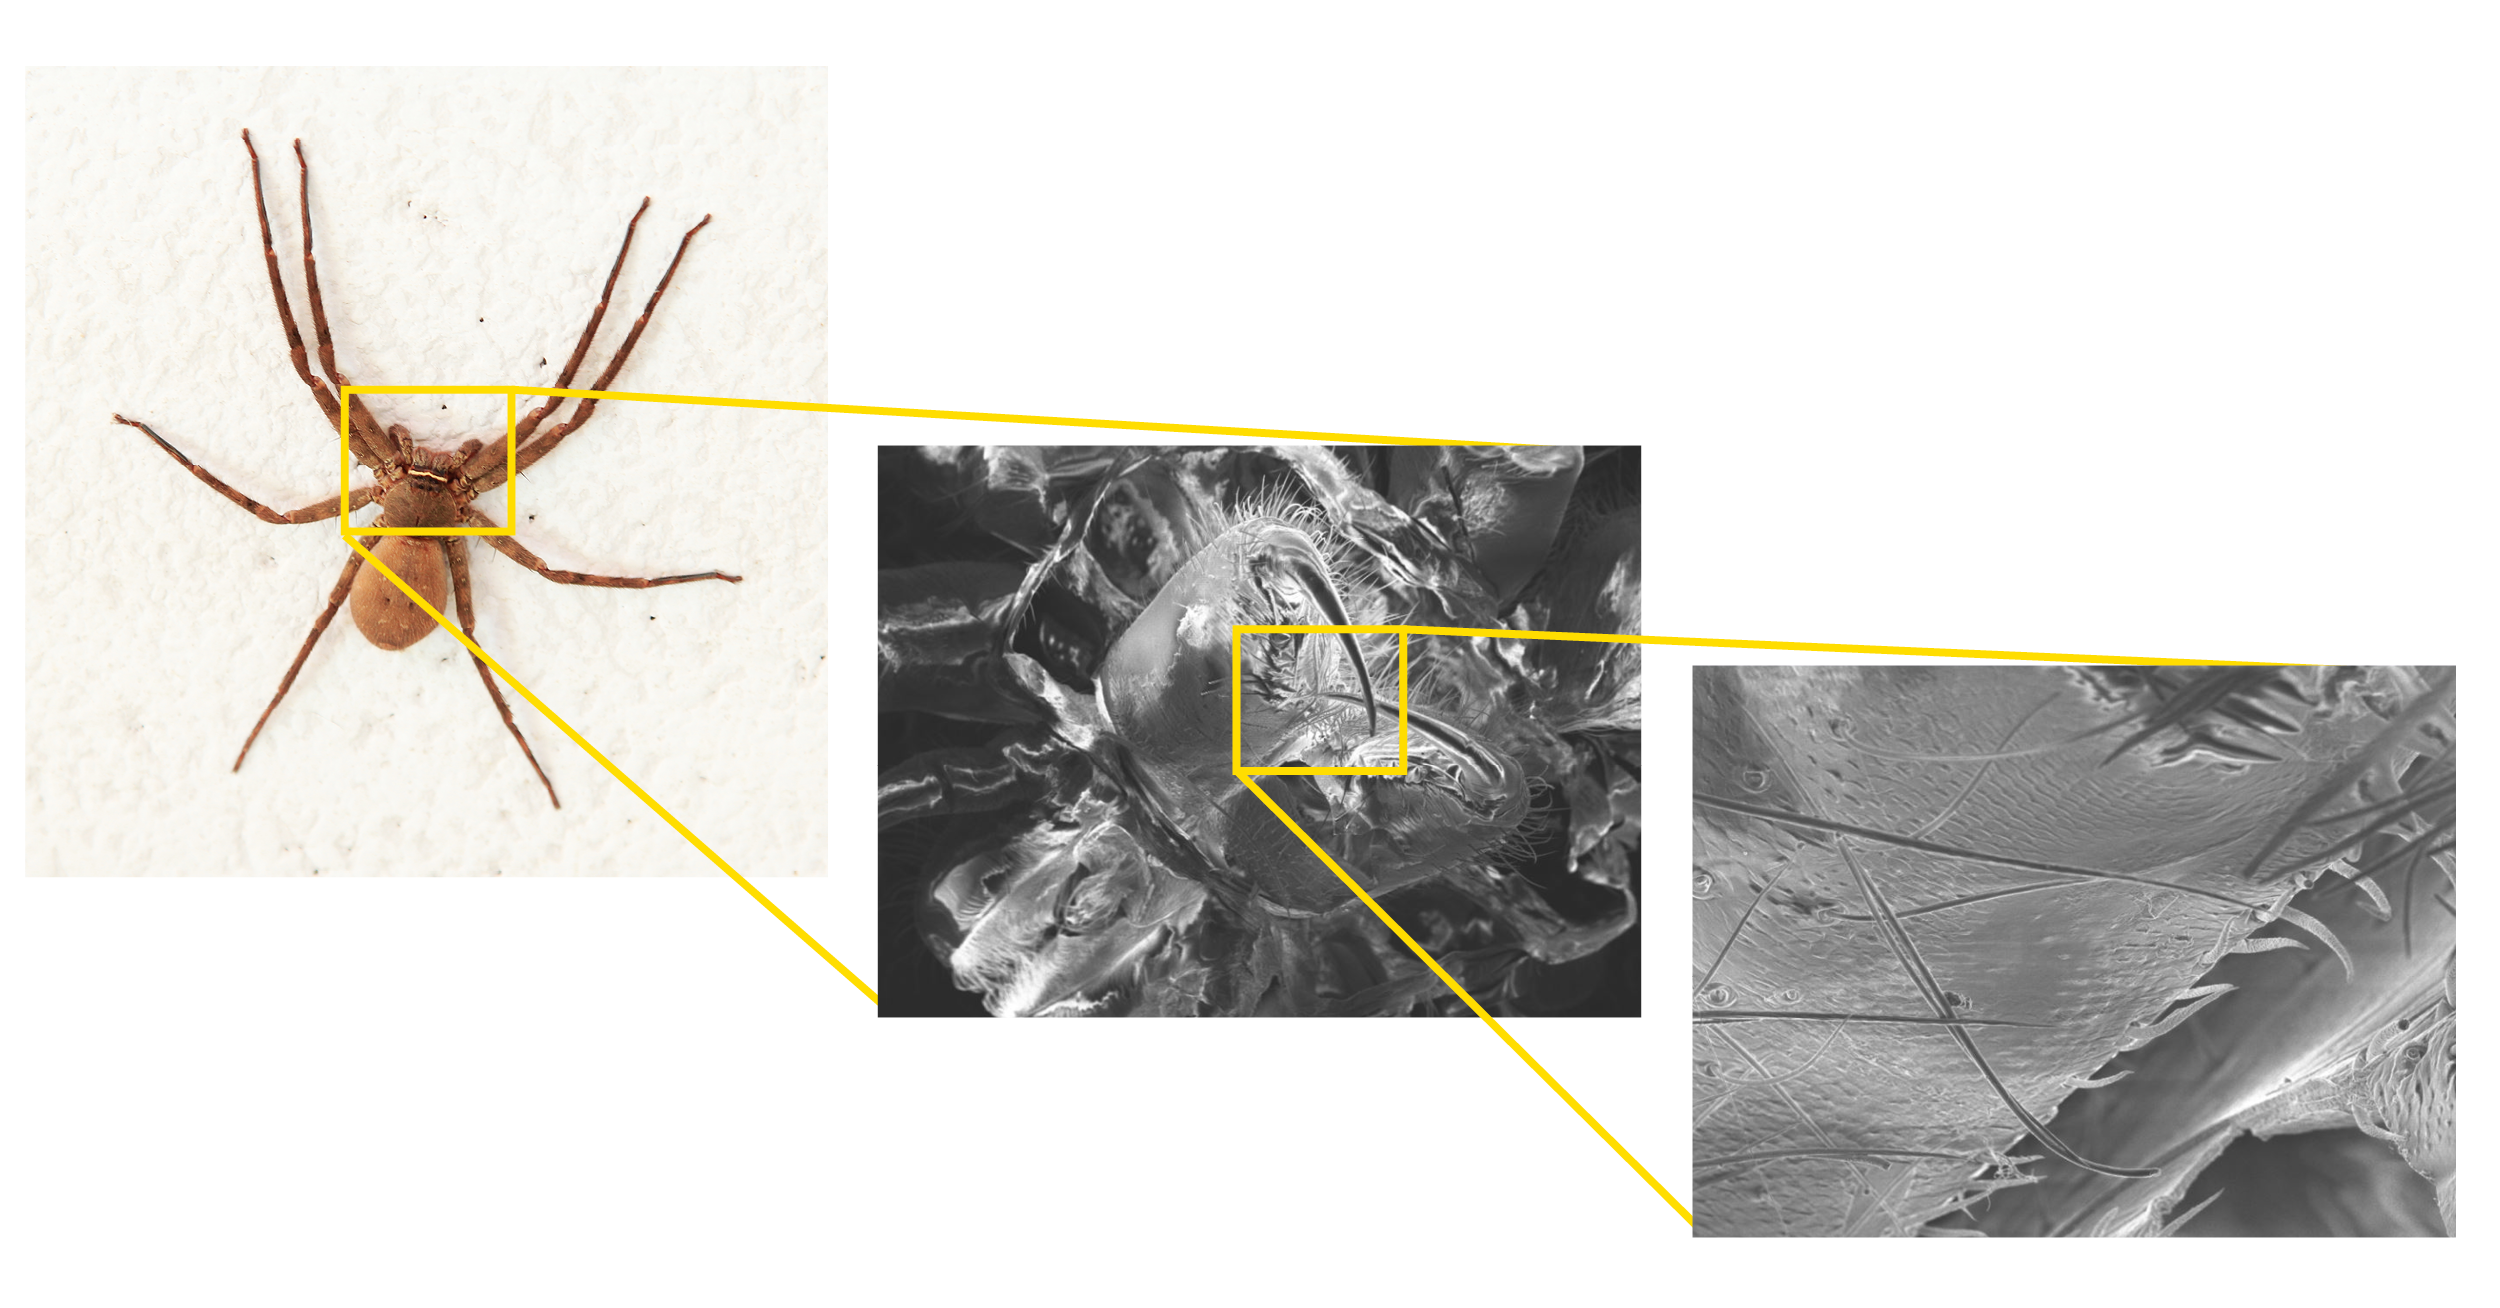 An image of a house spider under observation in a scanning electron microscope (SEM) at various magnifications.